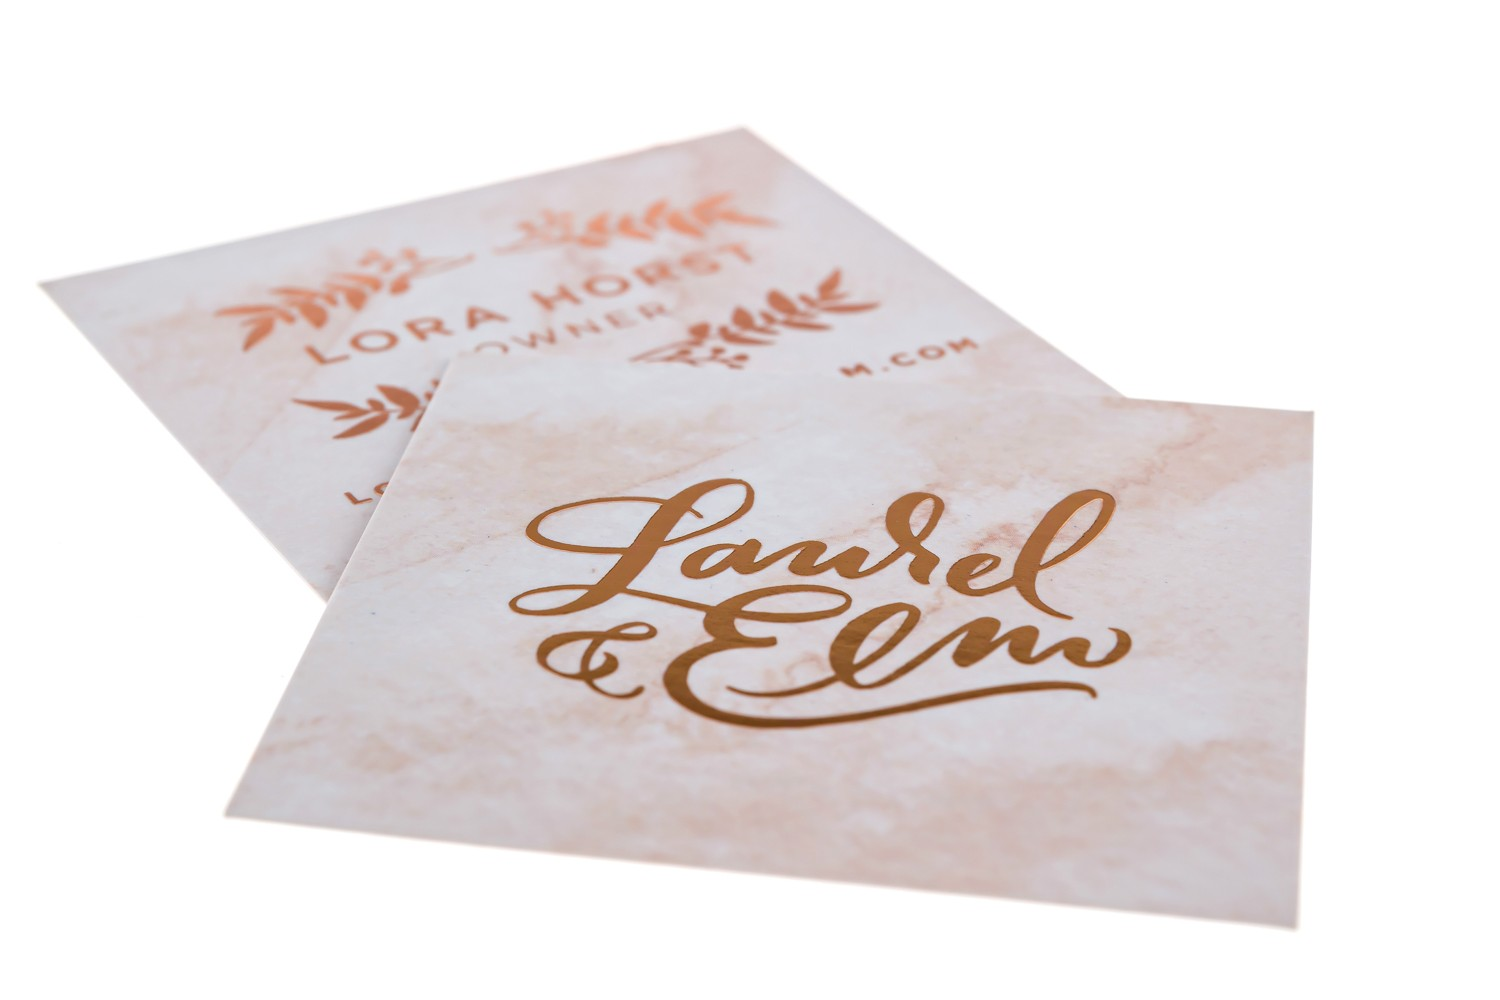 beautiful-square-marble-texture-rose-gold-foil-stamp-business-card-script-font